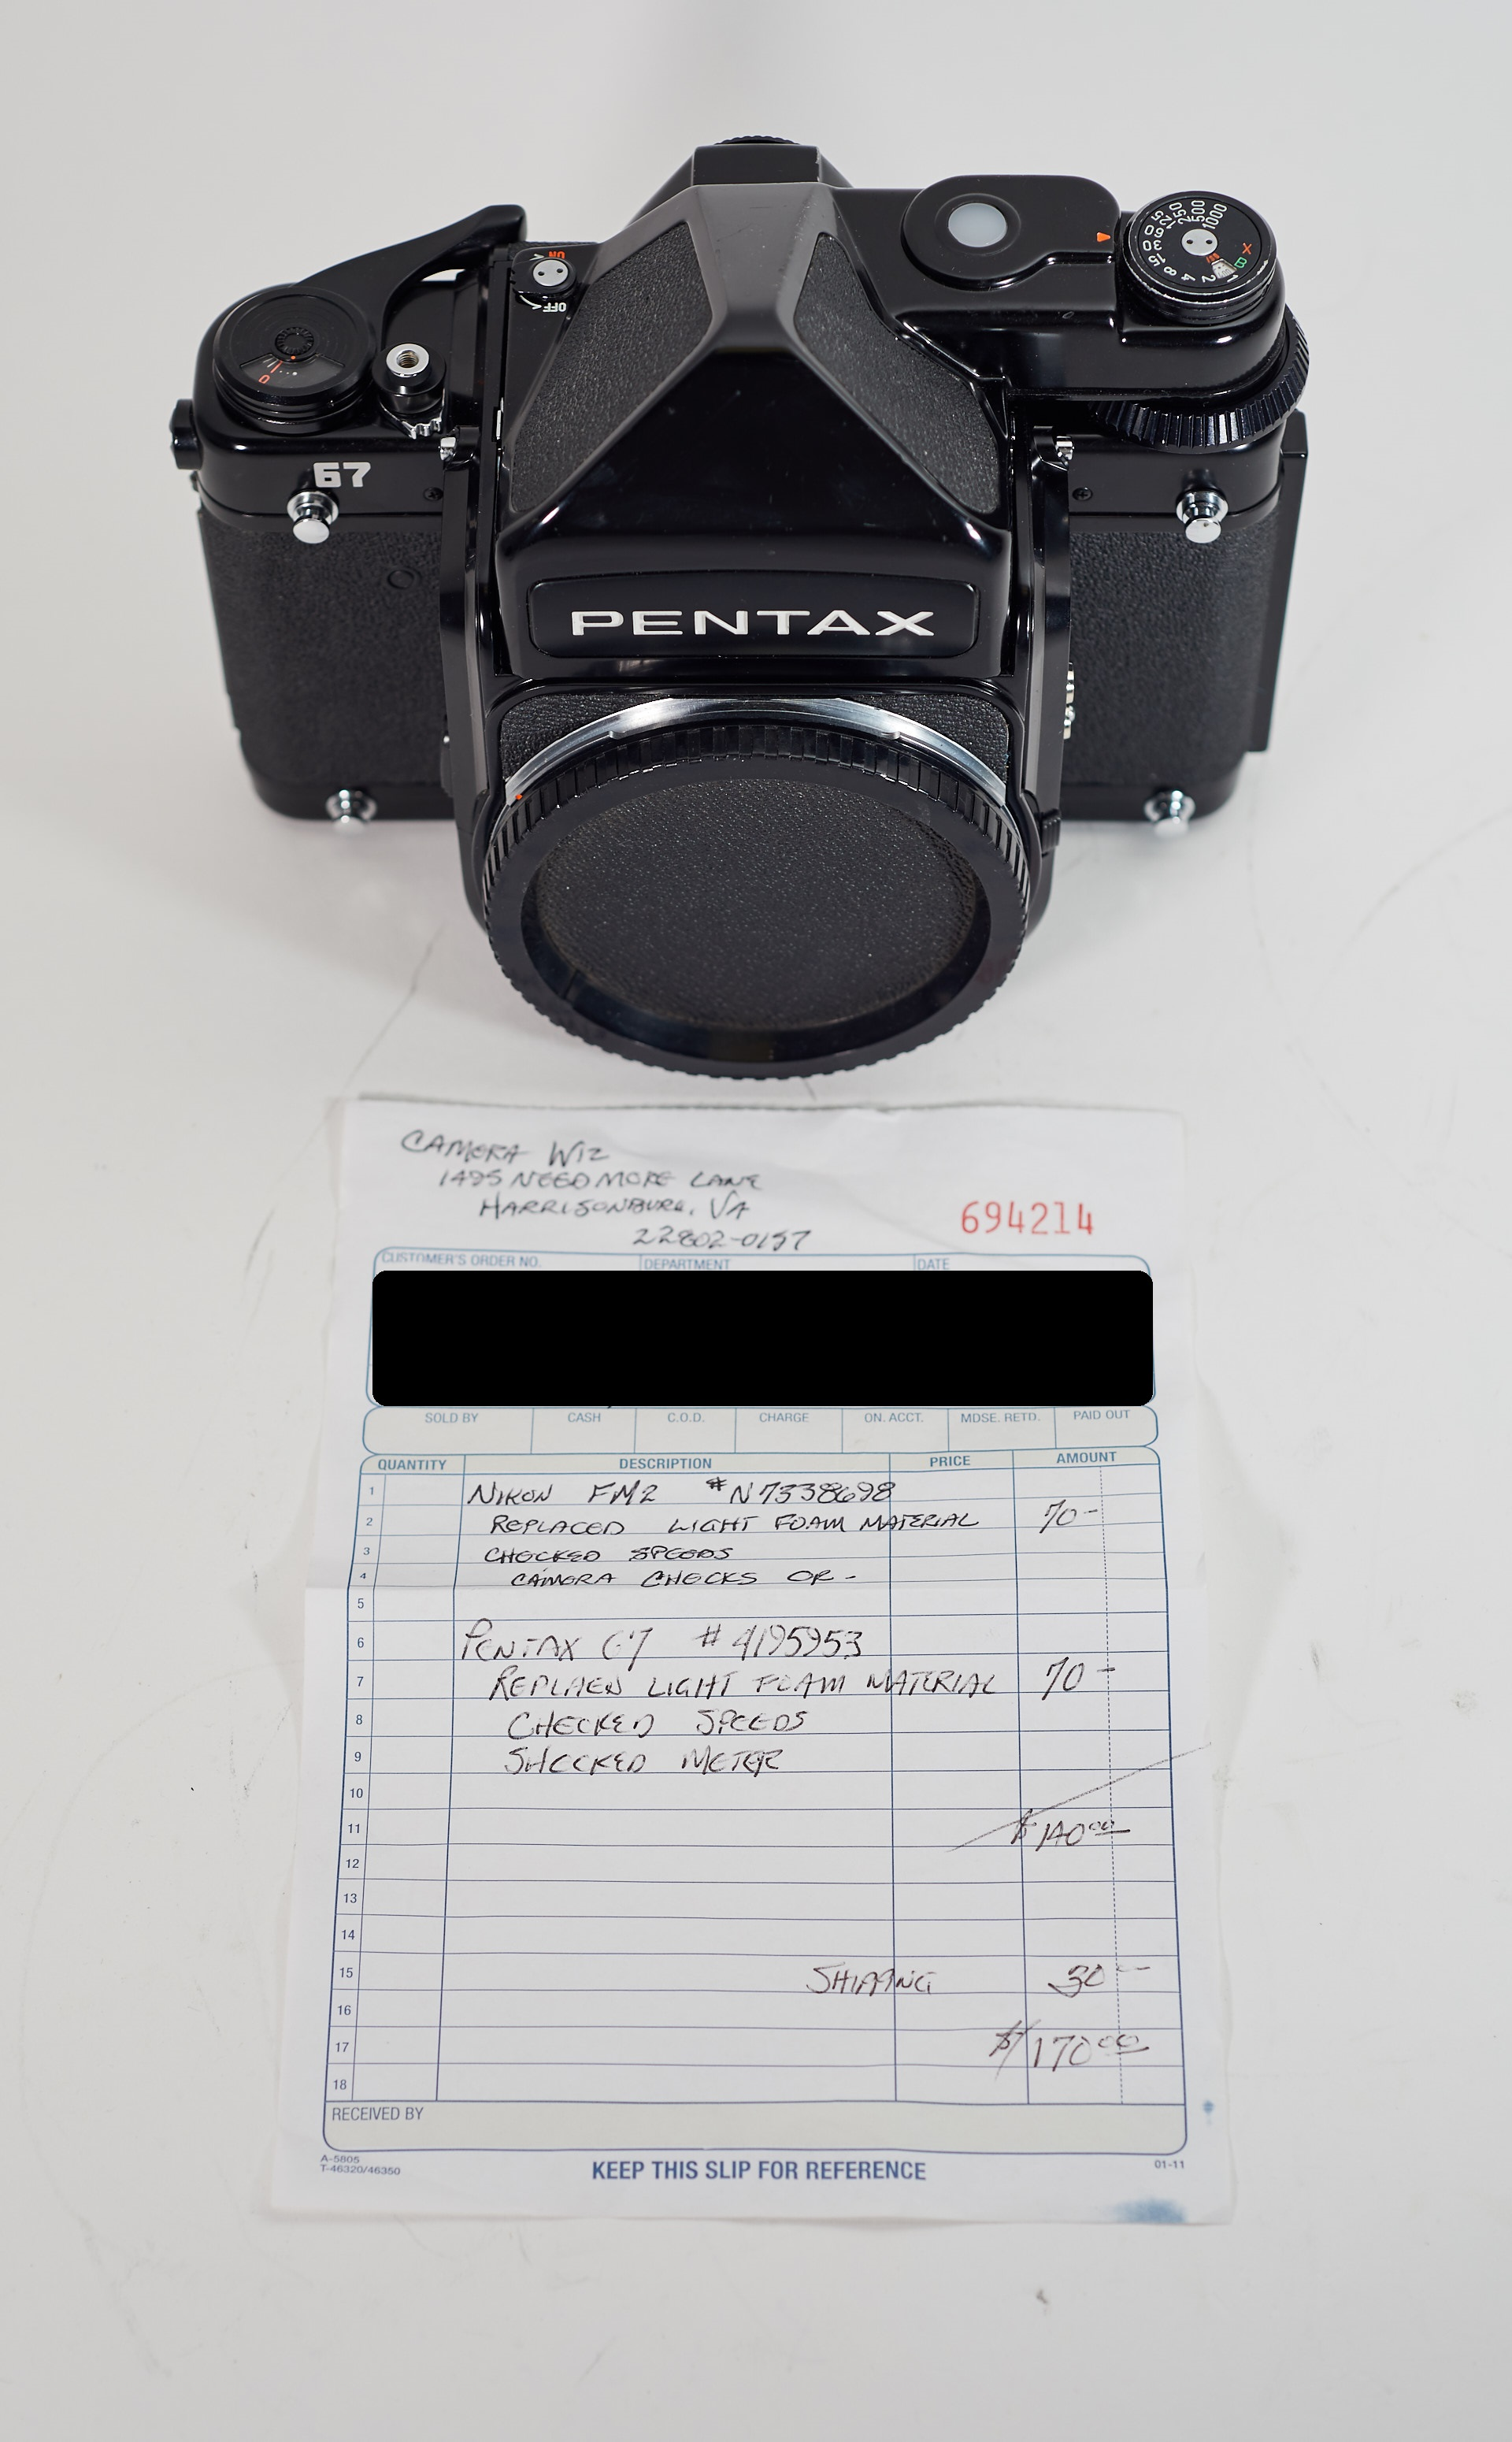 Pentax 67 body with meter prism (picture updated) - FM Forums